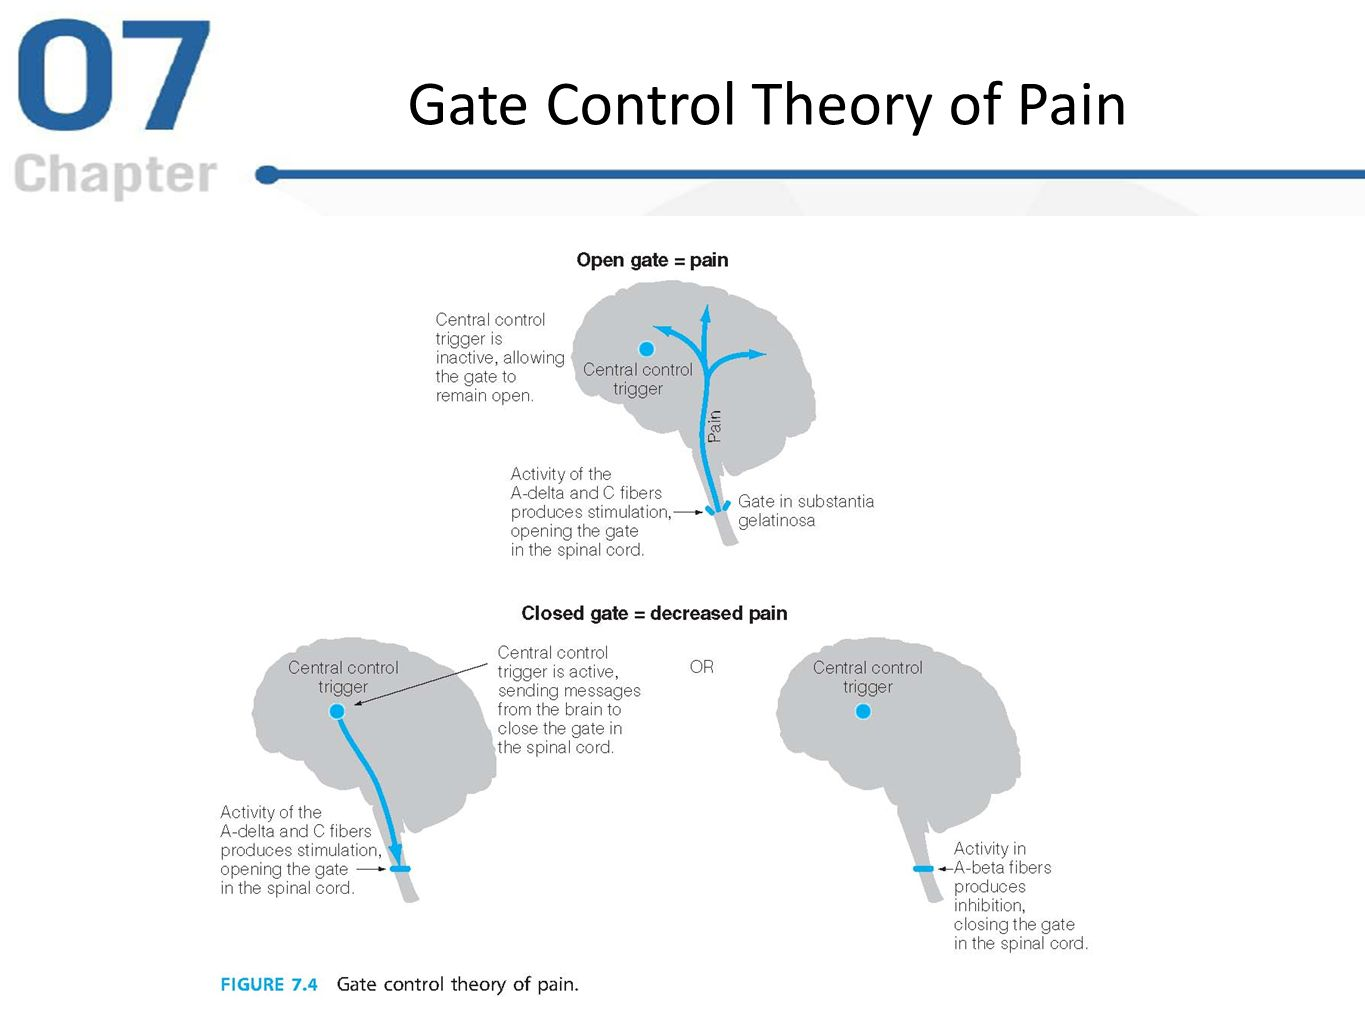 study of gate control theory and pain Applying gate control theory to pain relief therapies using gate control theory to reduce pain one of the most powerful results of the gate control theory is how it has influenced and explained why certain pain treatments are effective.